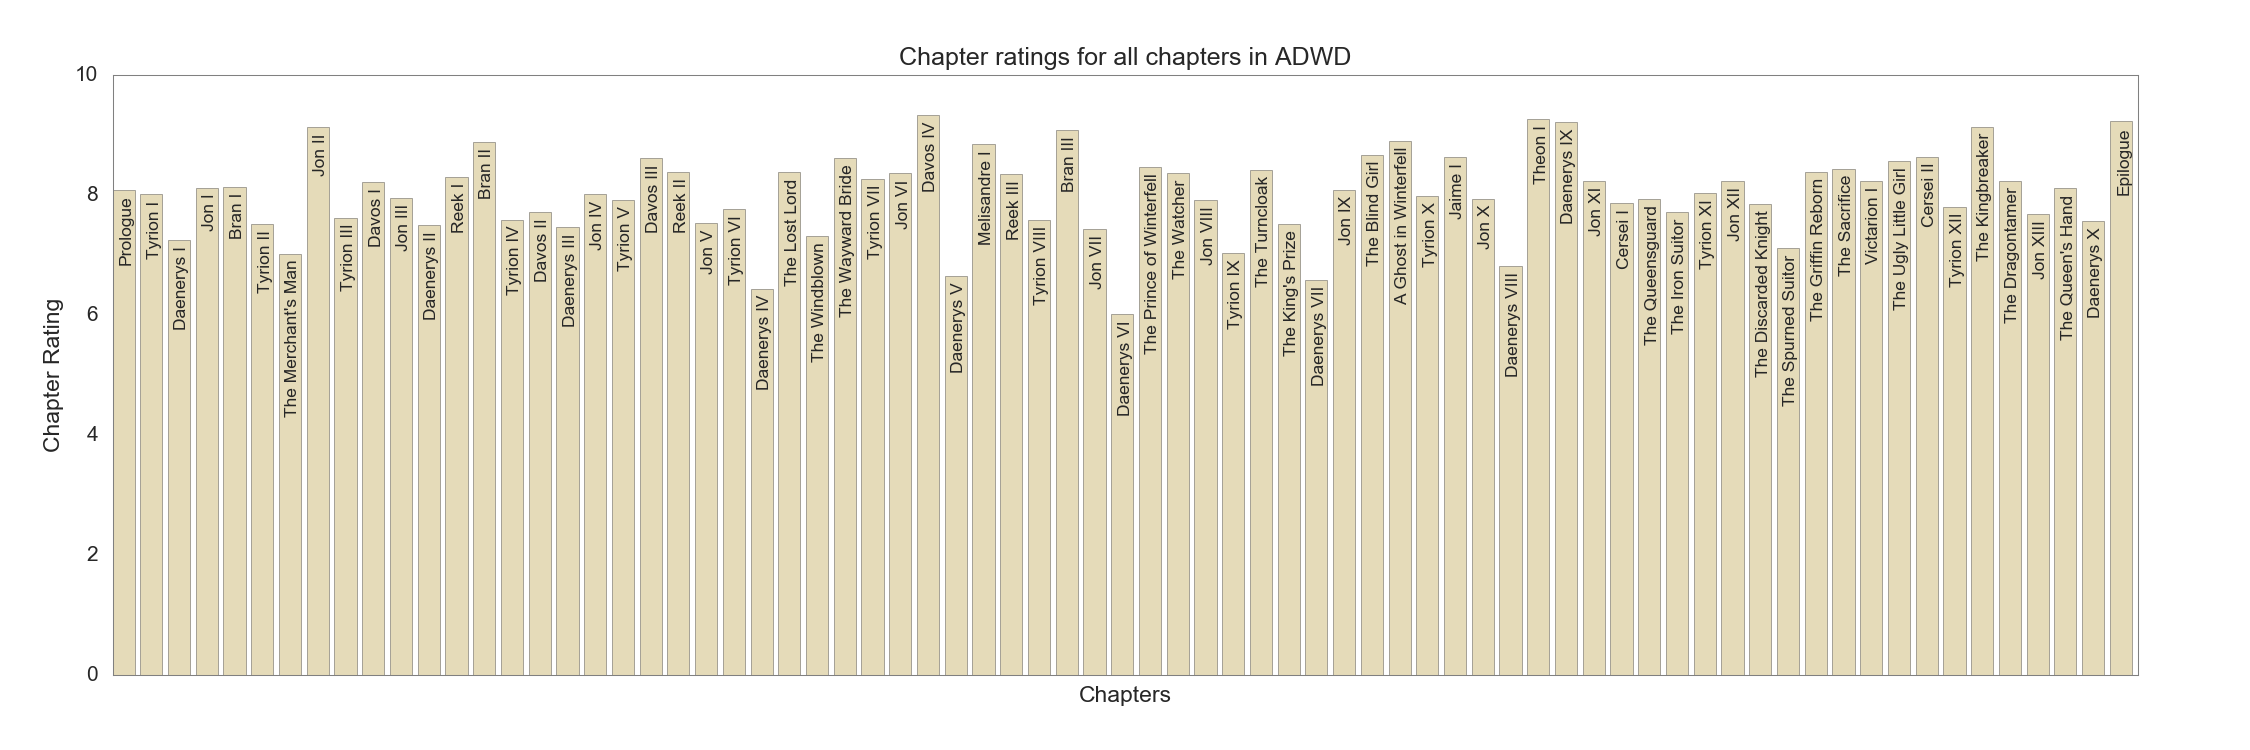 Chapter ratings in ADWD